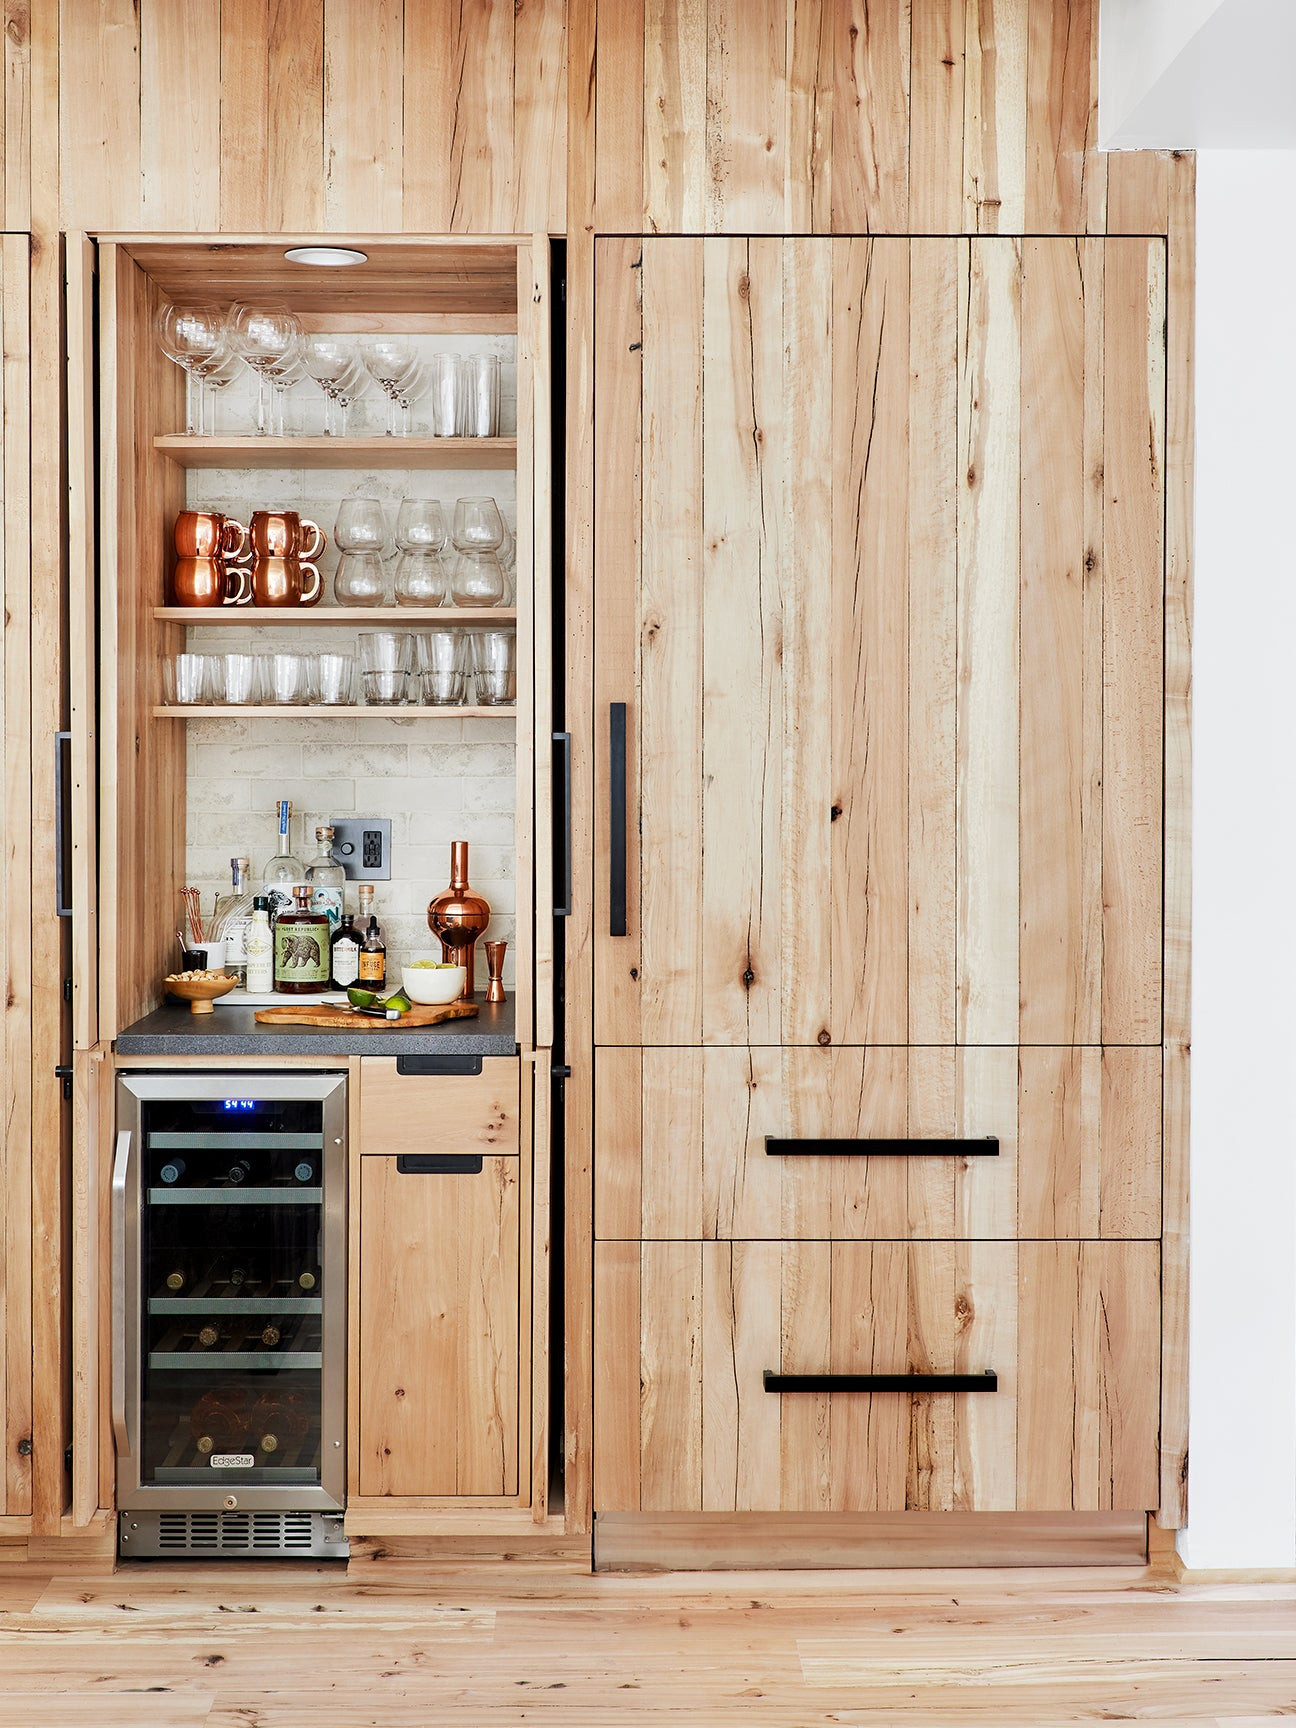 shot of the outside of a wood refrigerator with a bar nook next to it